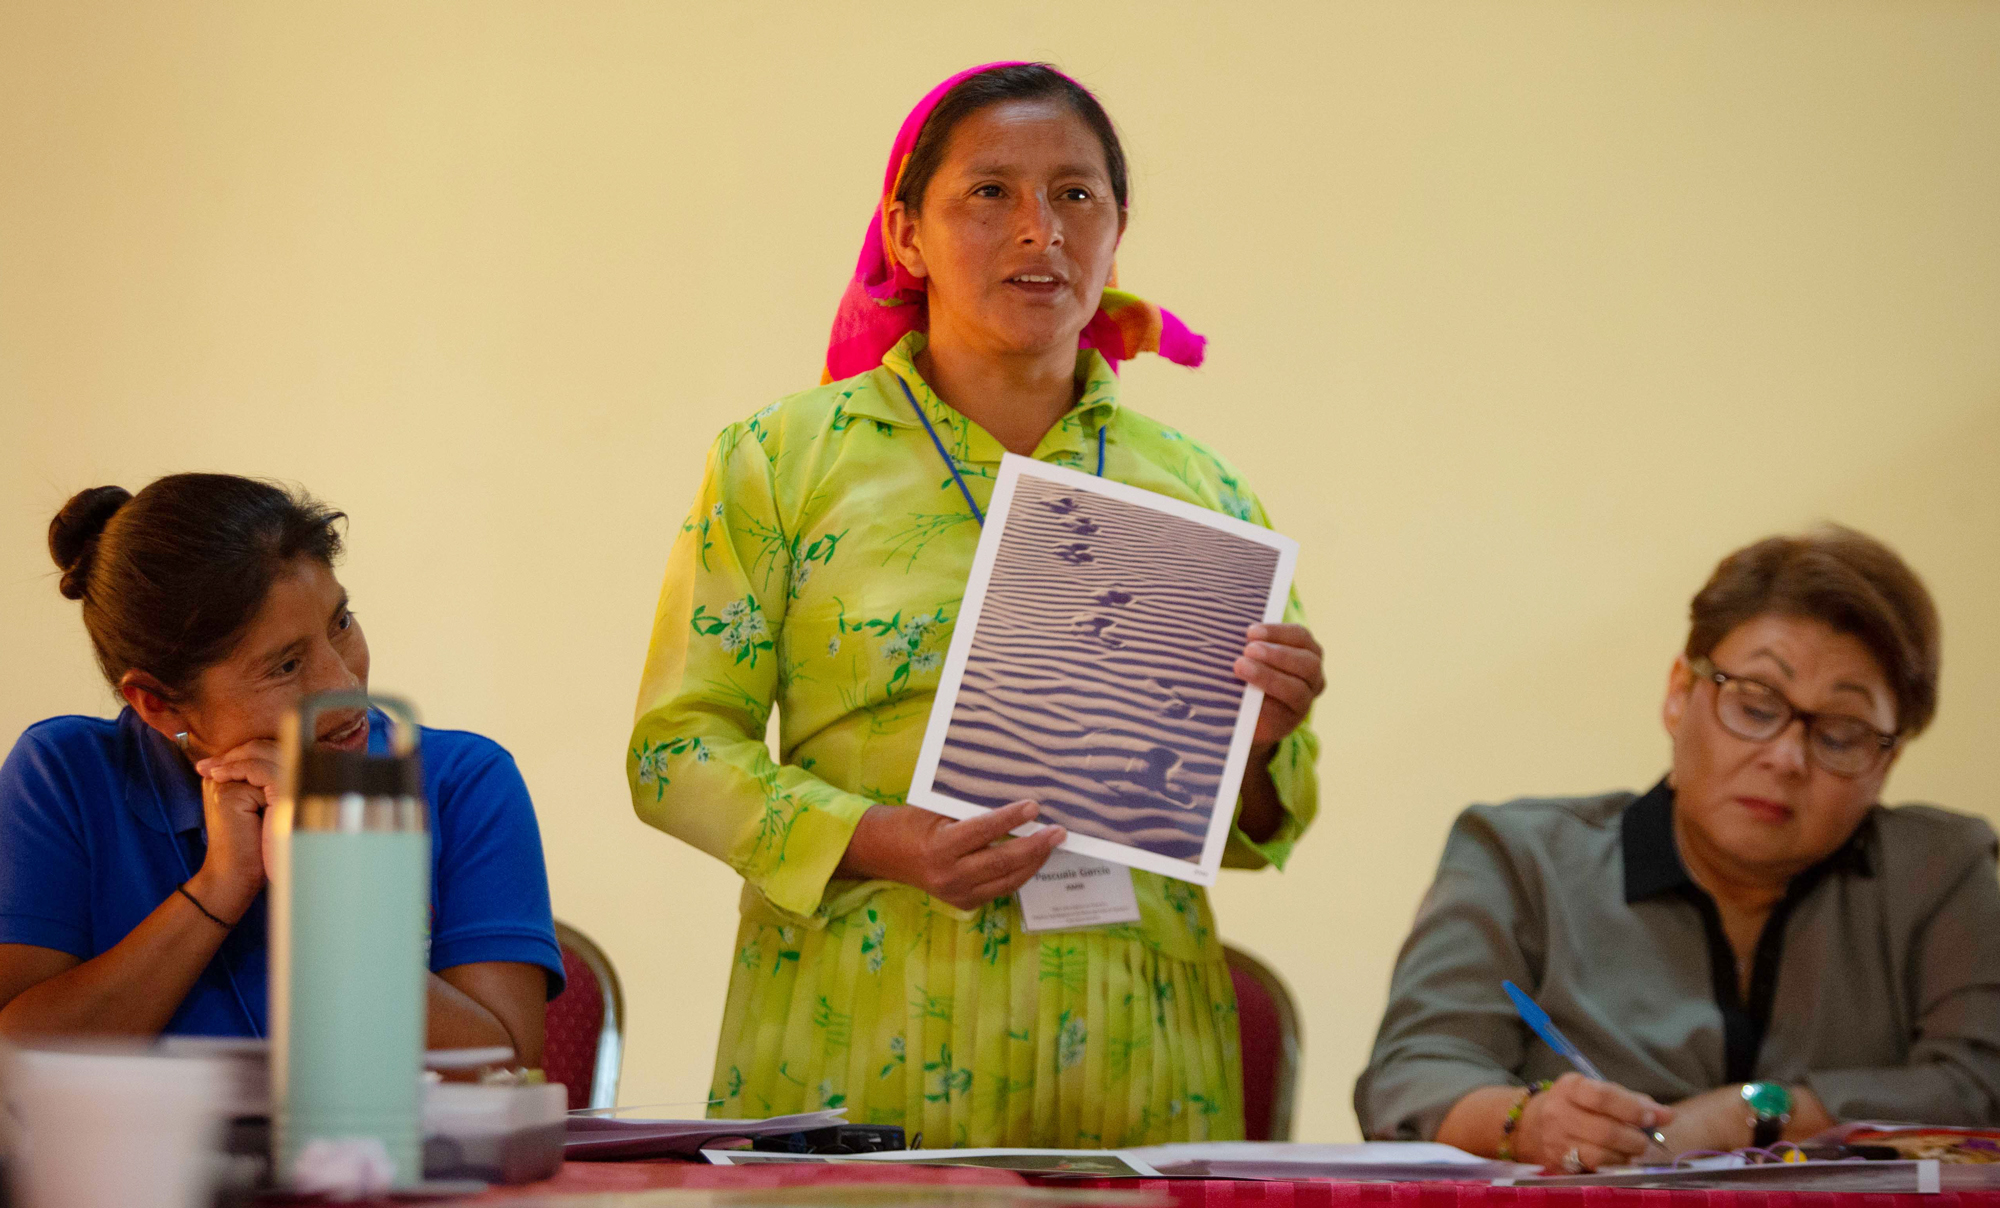 Woman in traditional dress stands at a meeting to speak, holding a photo, with professional women seated on either side of her